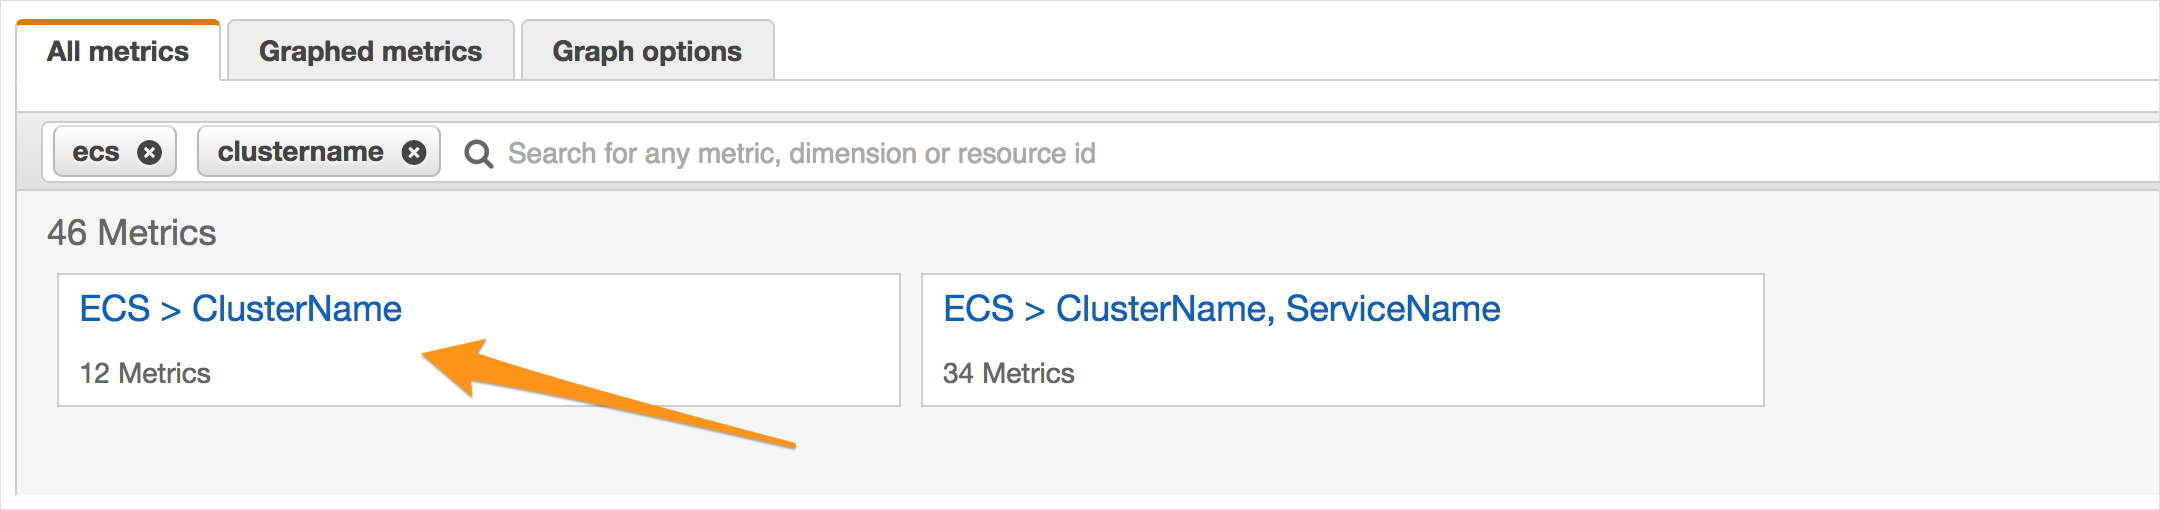 ECS auto scaling: Here is what you need to know | nClouds Blog